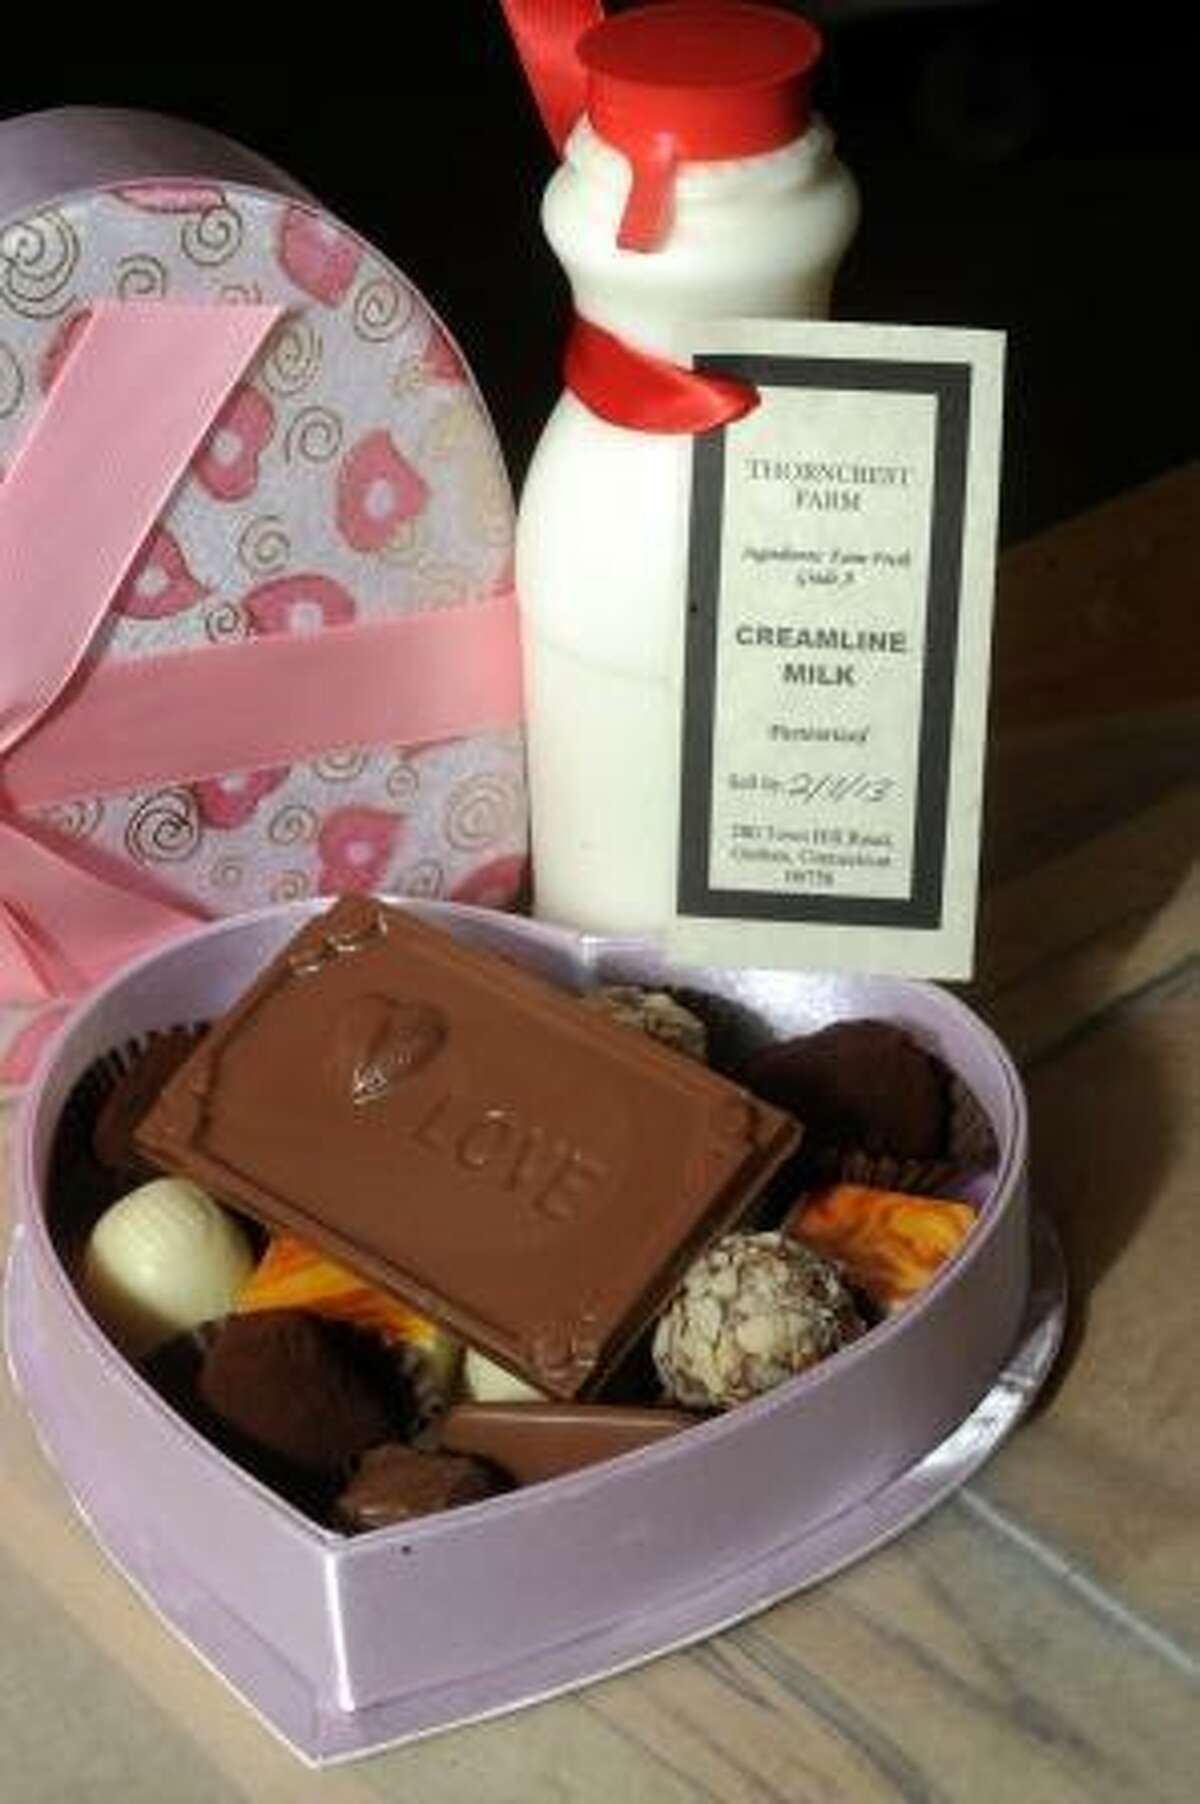 Laurie Gaboardi A gift option for Valentine's Day, and a bottle of the creamery's milk to go with it.